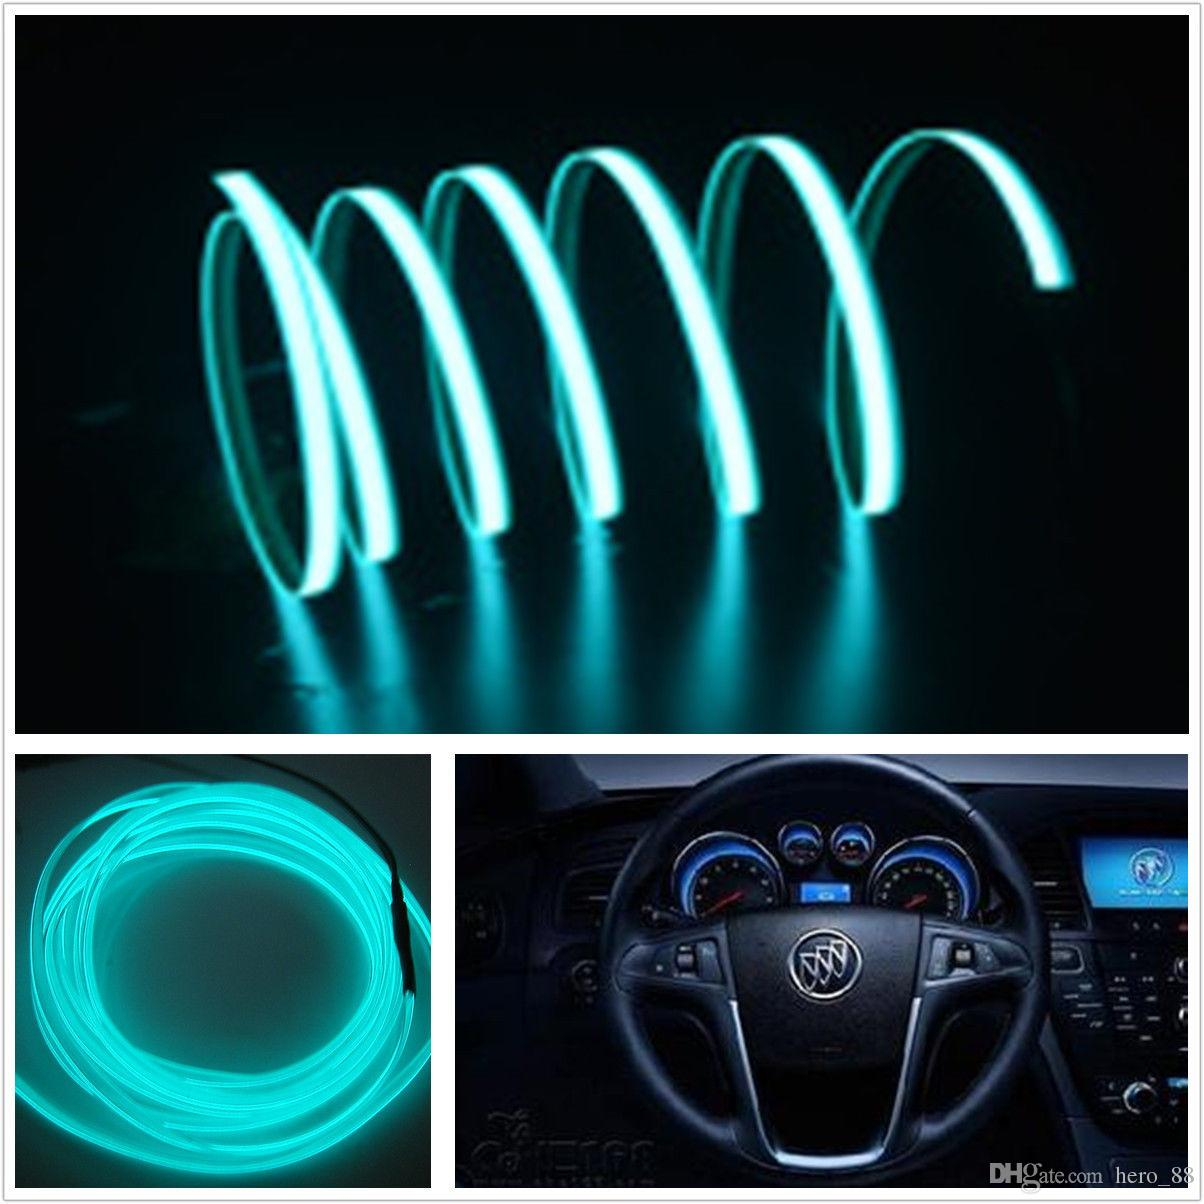 2M ICE BLUE EL Wire Car SUV Unique Decor Fluorescent Strip Neon Lamp Cold  Light Interior Trim Decorative Strip Online With $8.64/Piece On Hero_88u0027s  Store ...